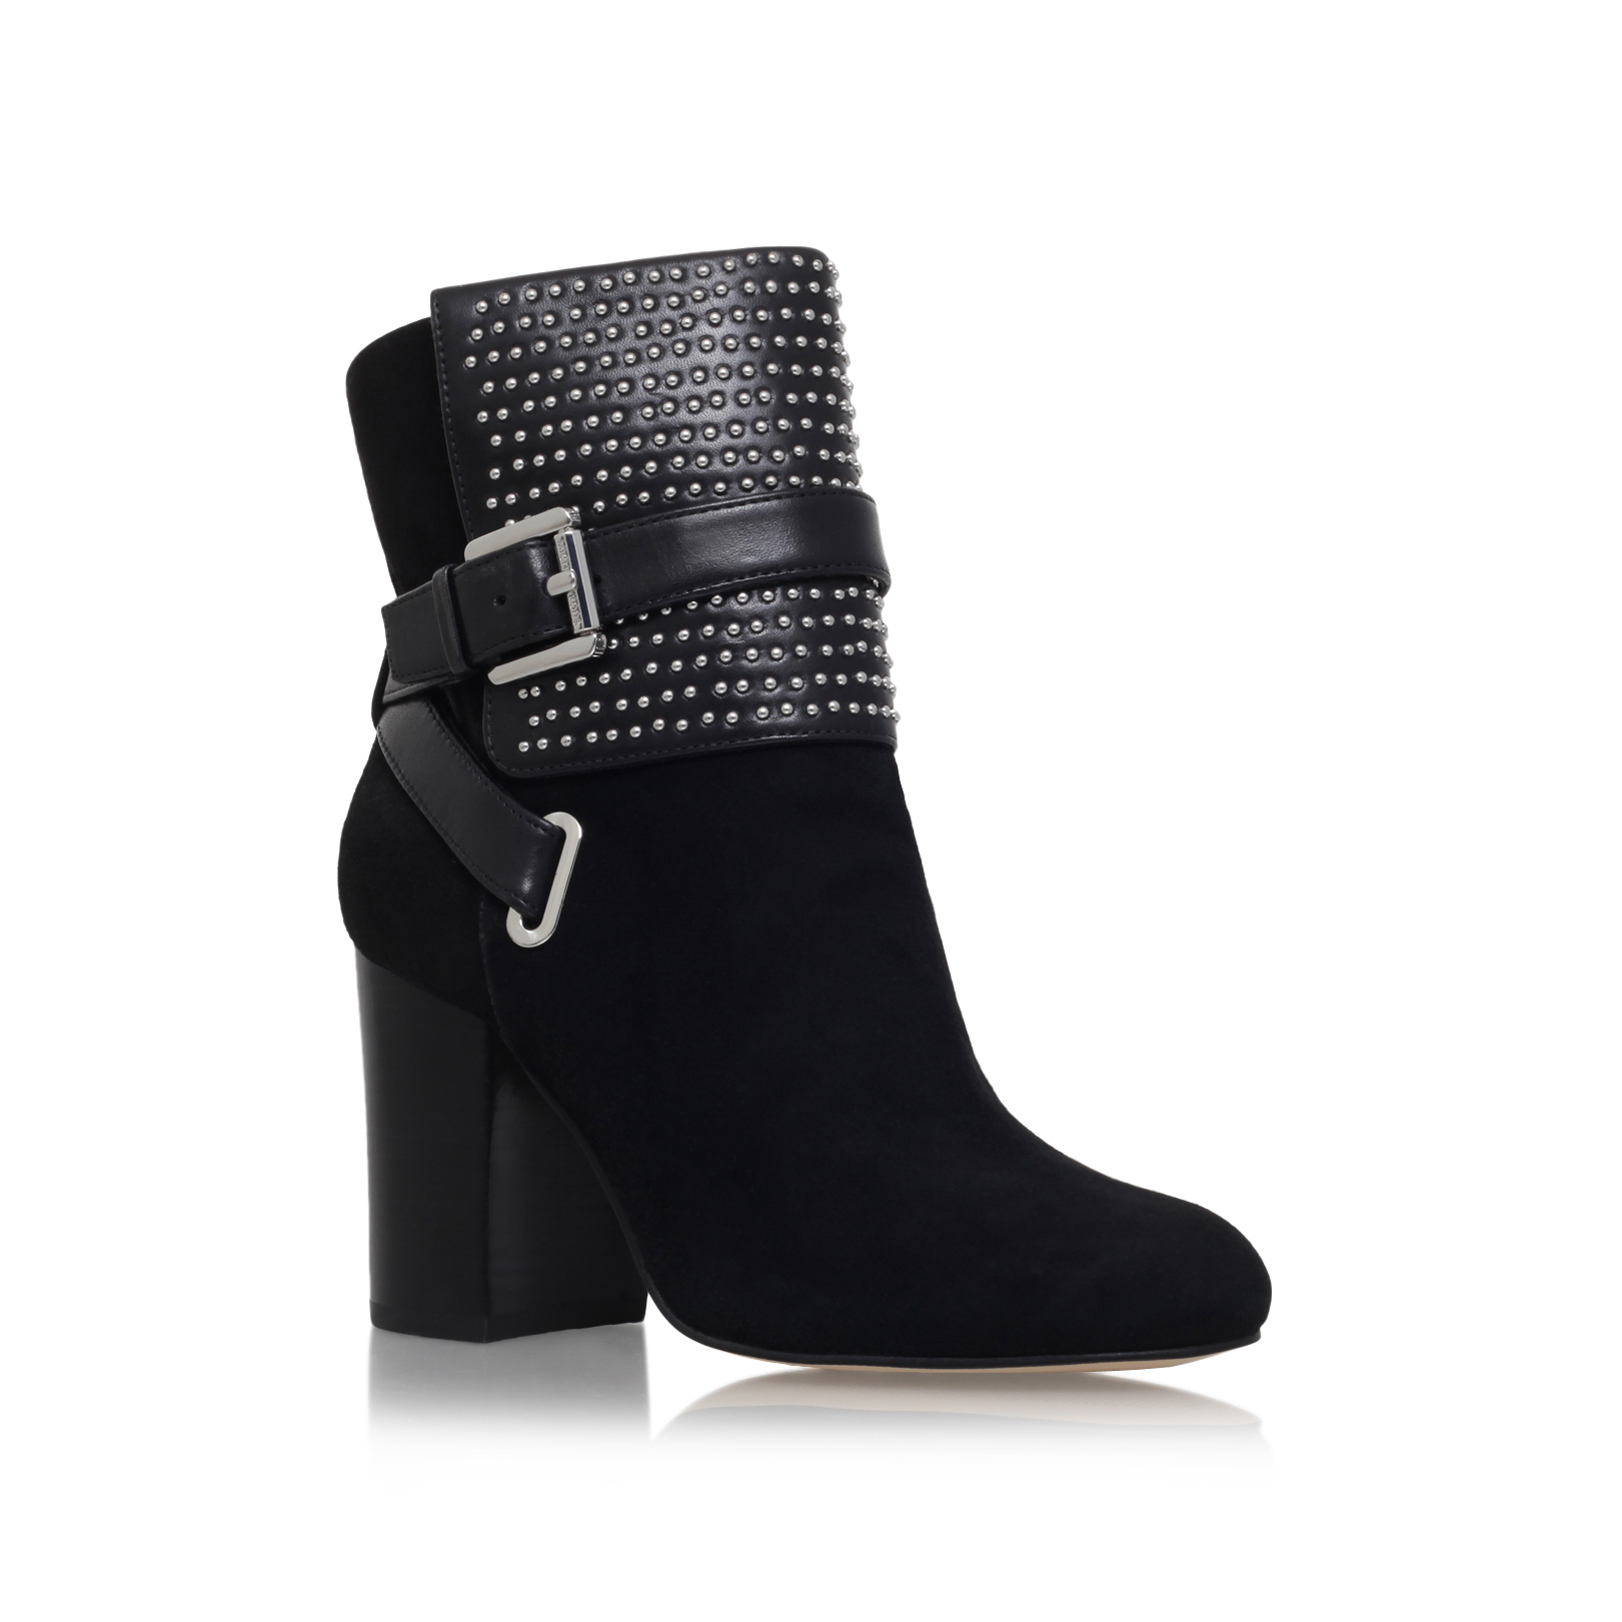 KRISTA ANKLE BOOT